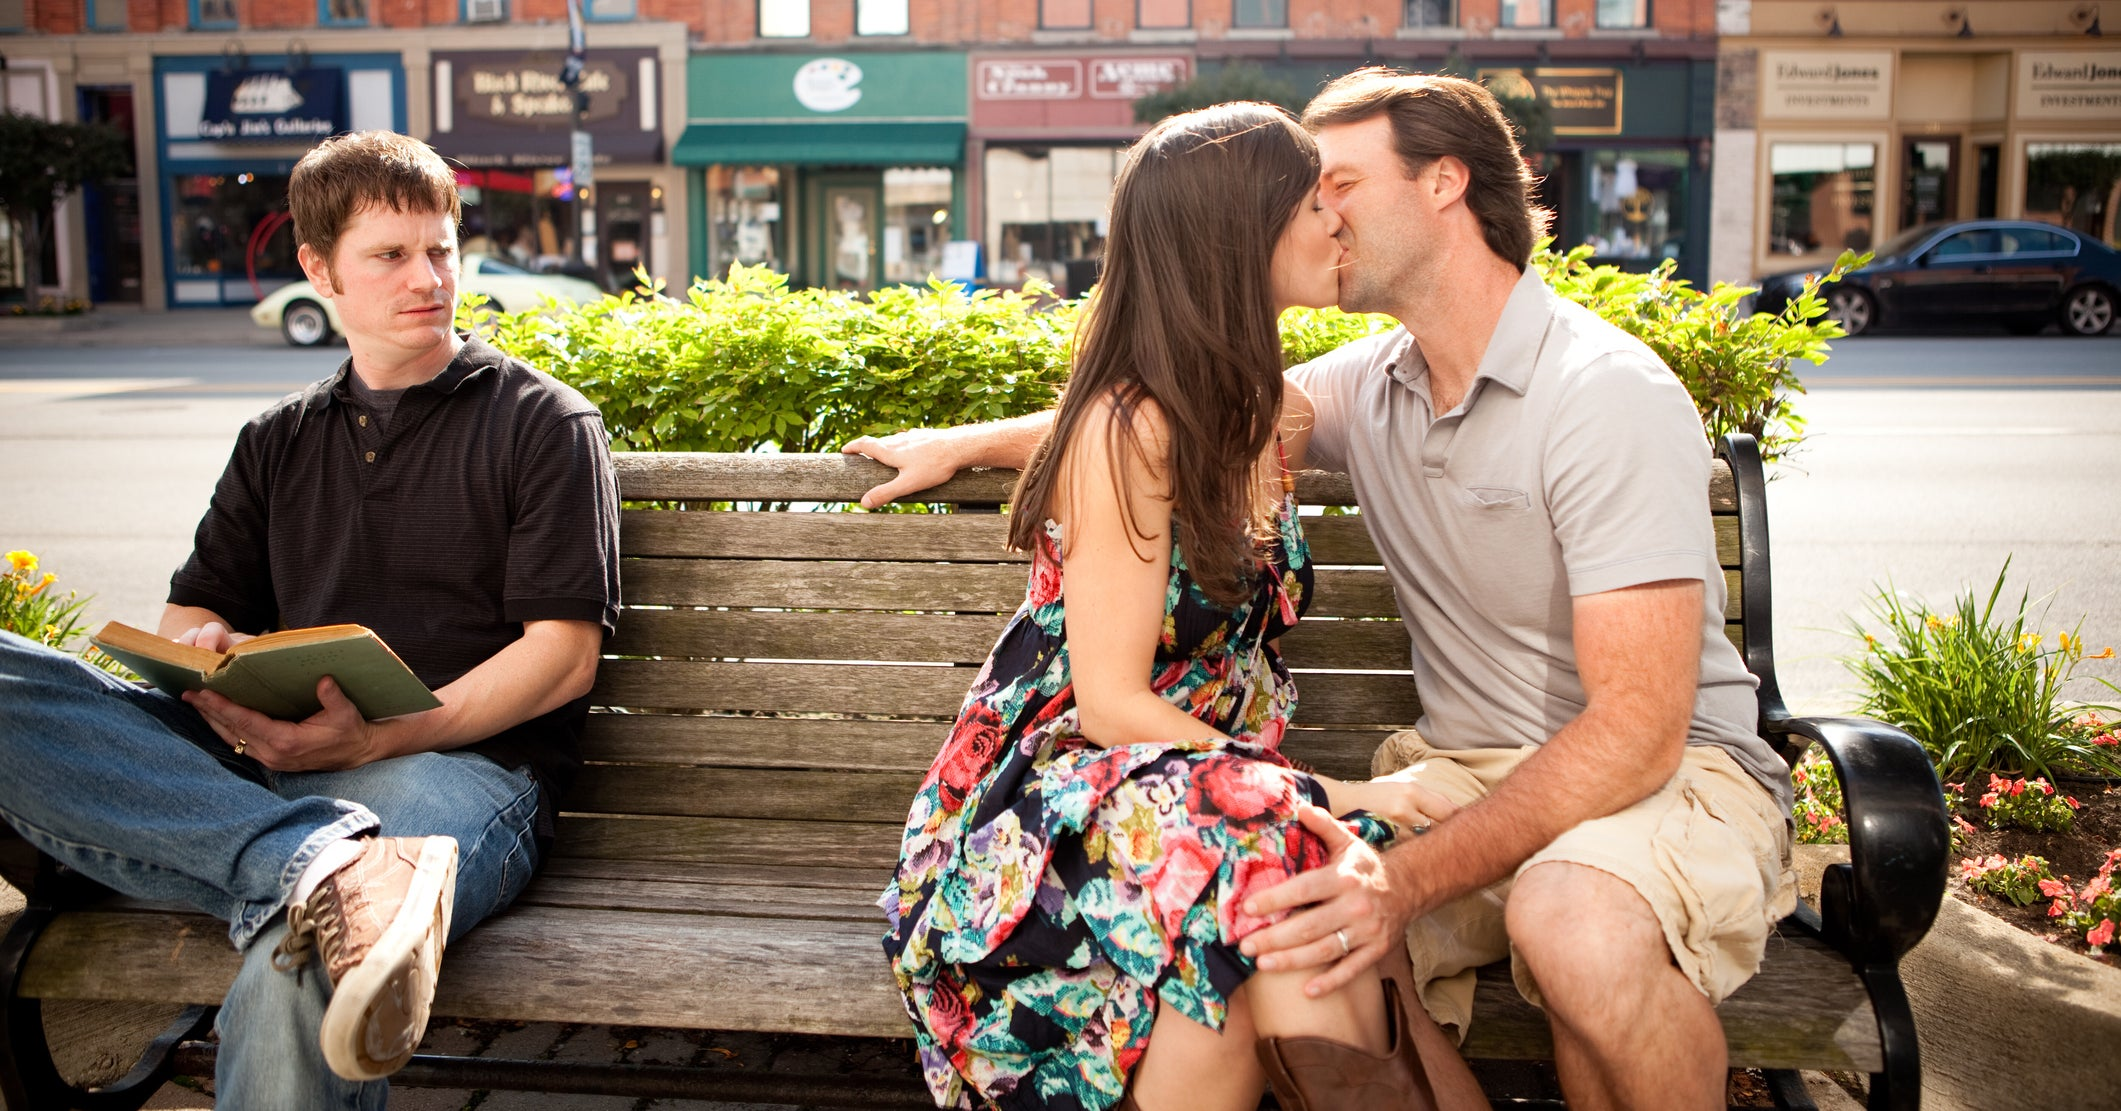 How Do You Really Feel About PDA?